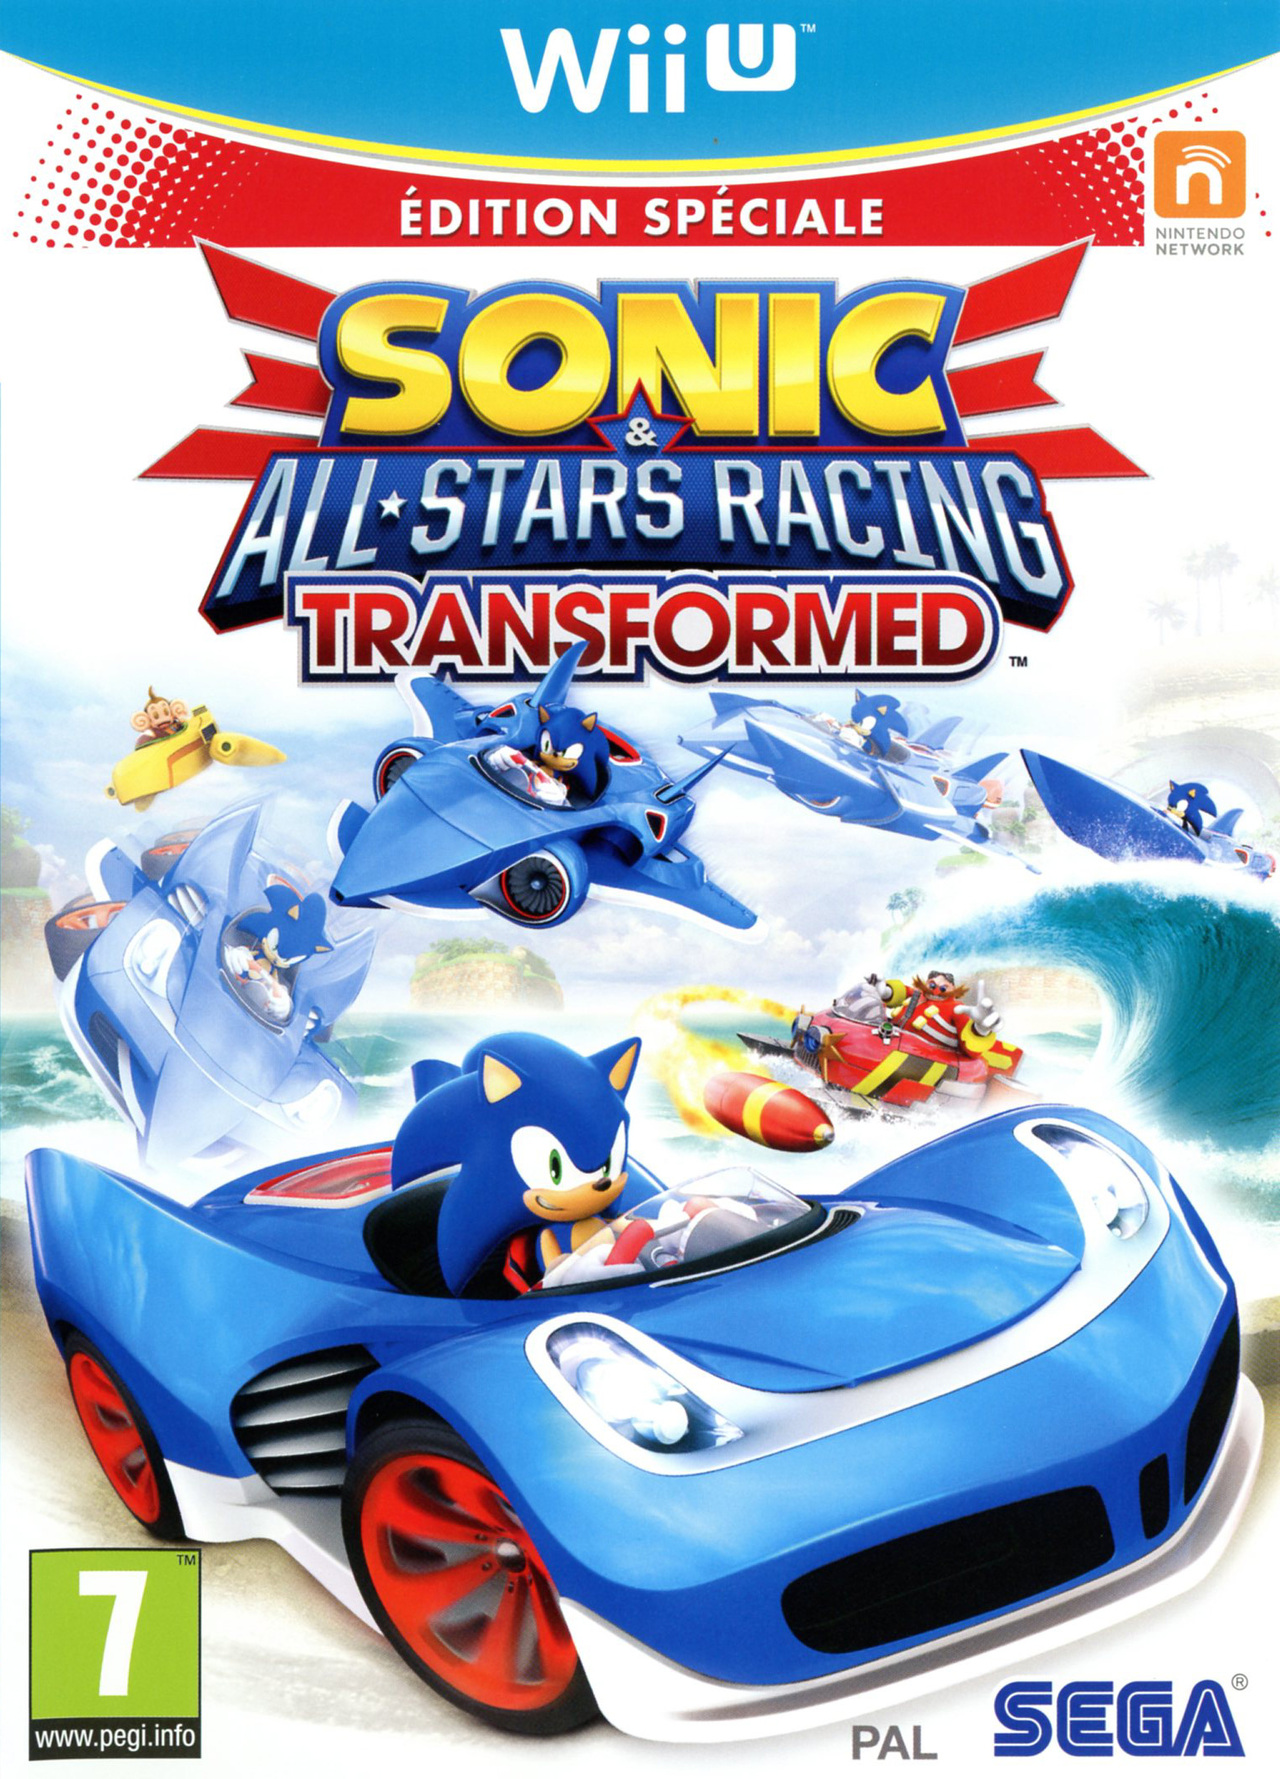 Images Sonic & All Stars Racing Transformed Wii U - 1